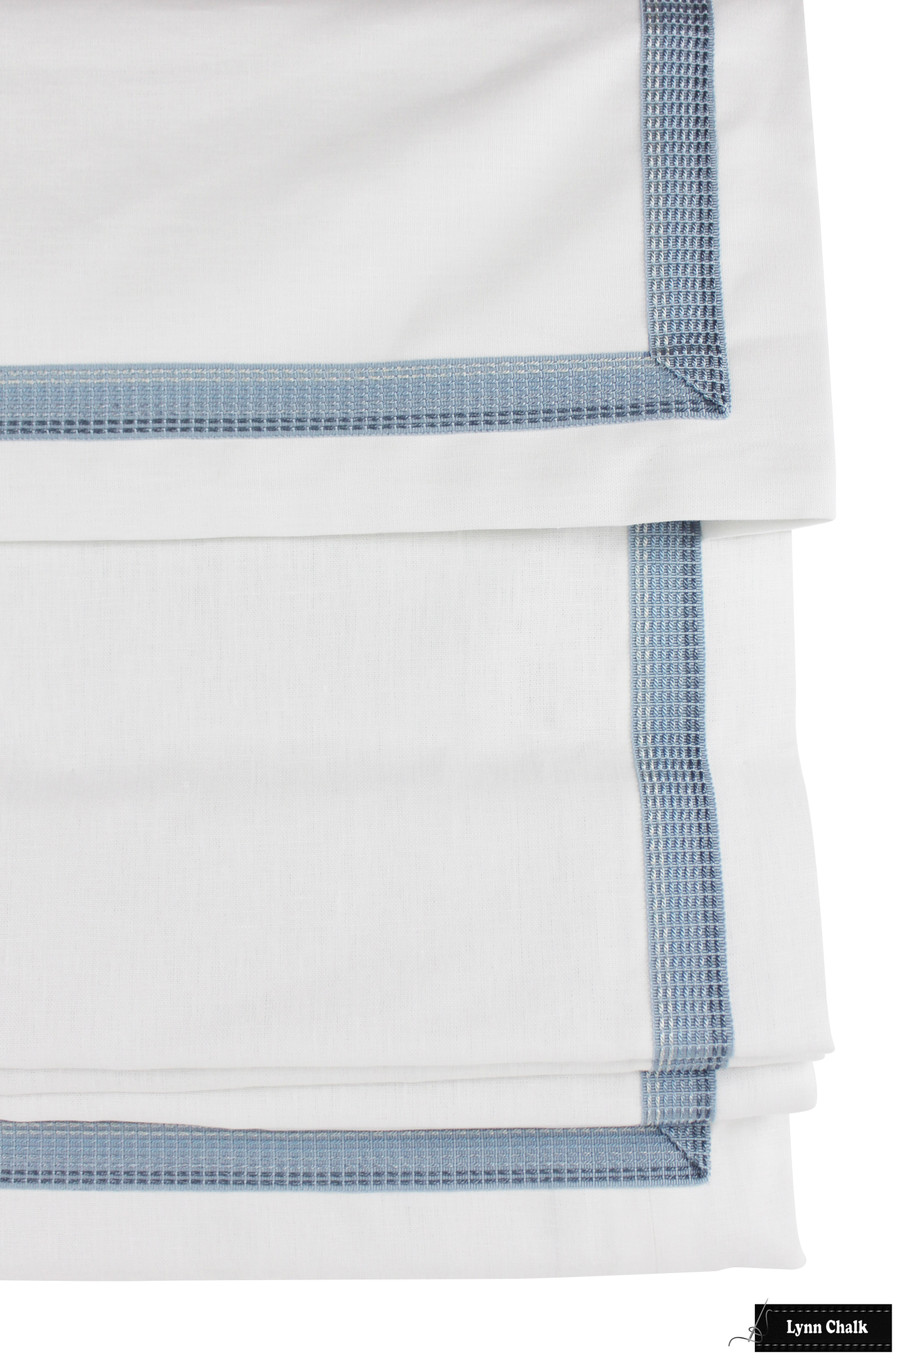 Roman Shade with Self Valance White Linen Samuel and Sons Aurelia Ombre Border Wedgewood 977-56129-2